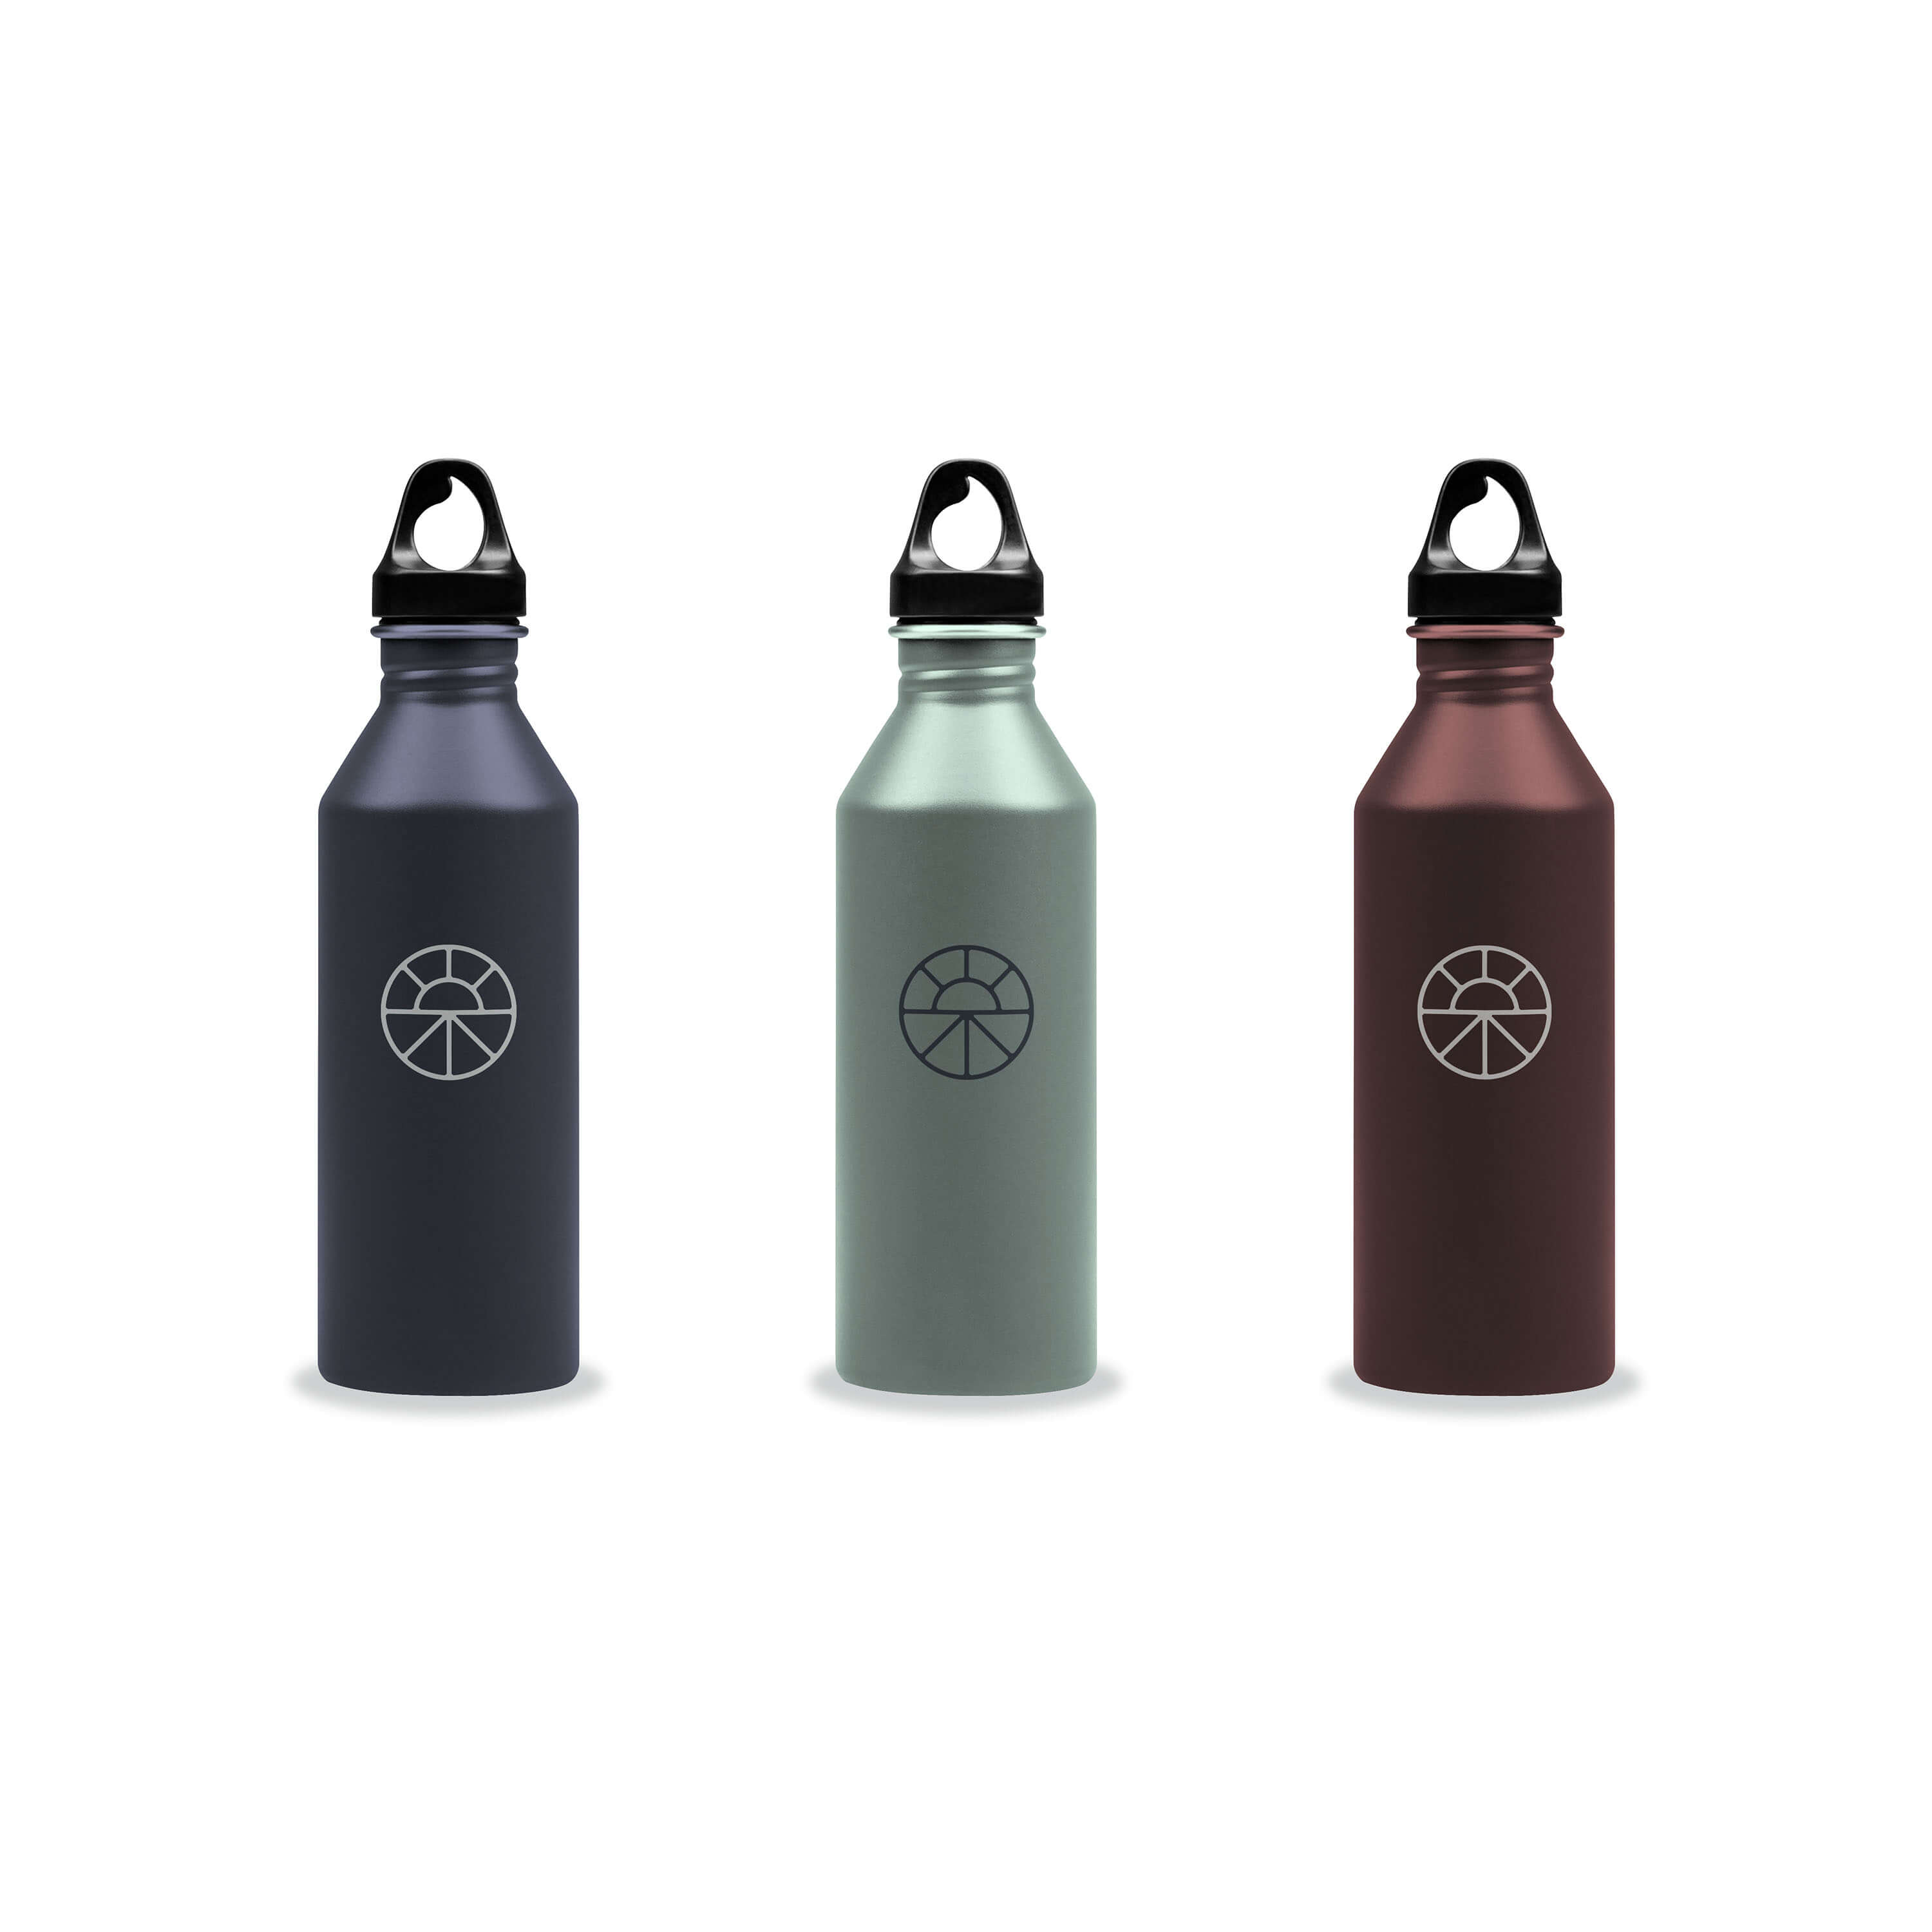 Water Bottles with The Well Logo Mark